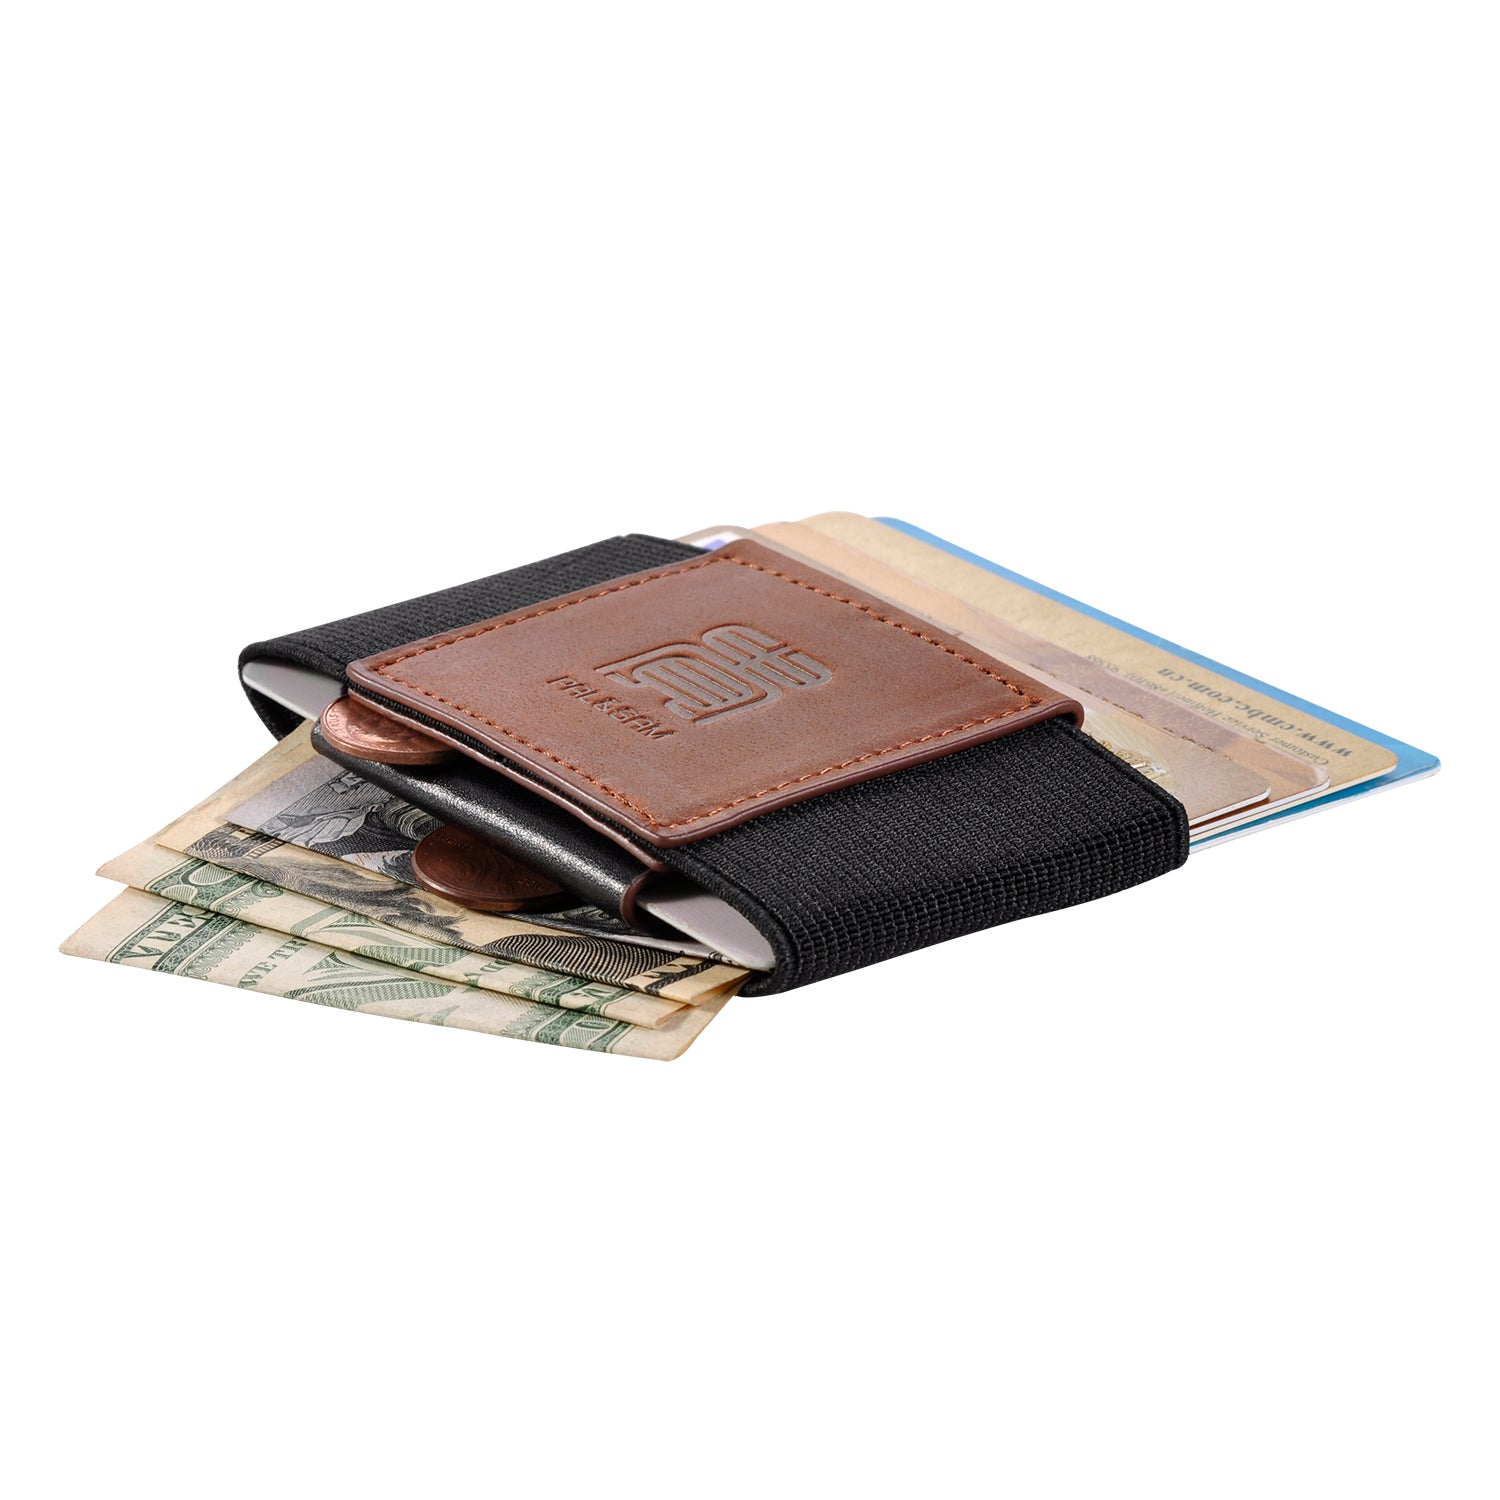 Front Pocket Minimalist EDC Slim Wallet 15 Card Holders for Men Cash Coins Ke HI